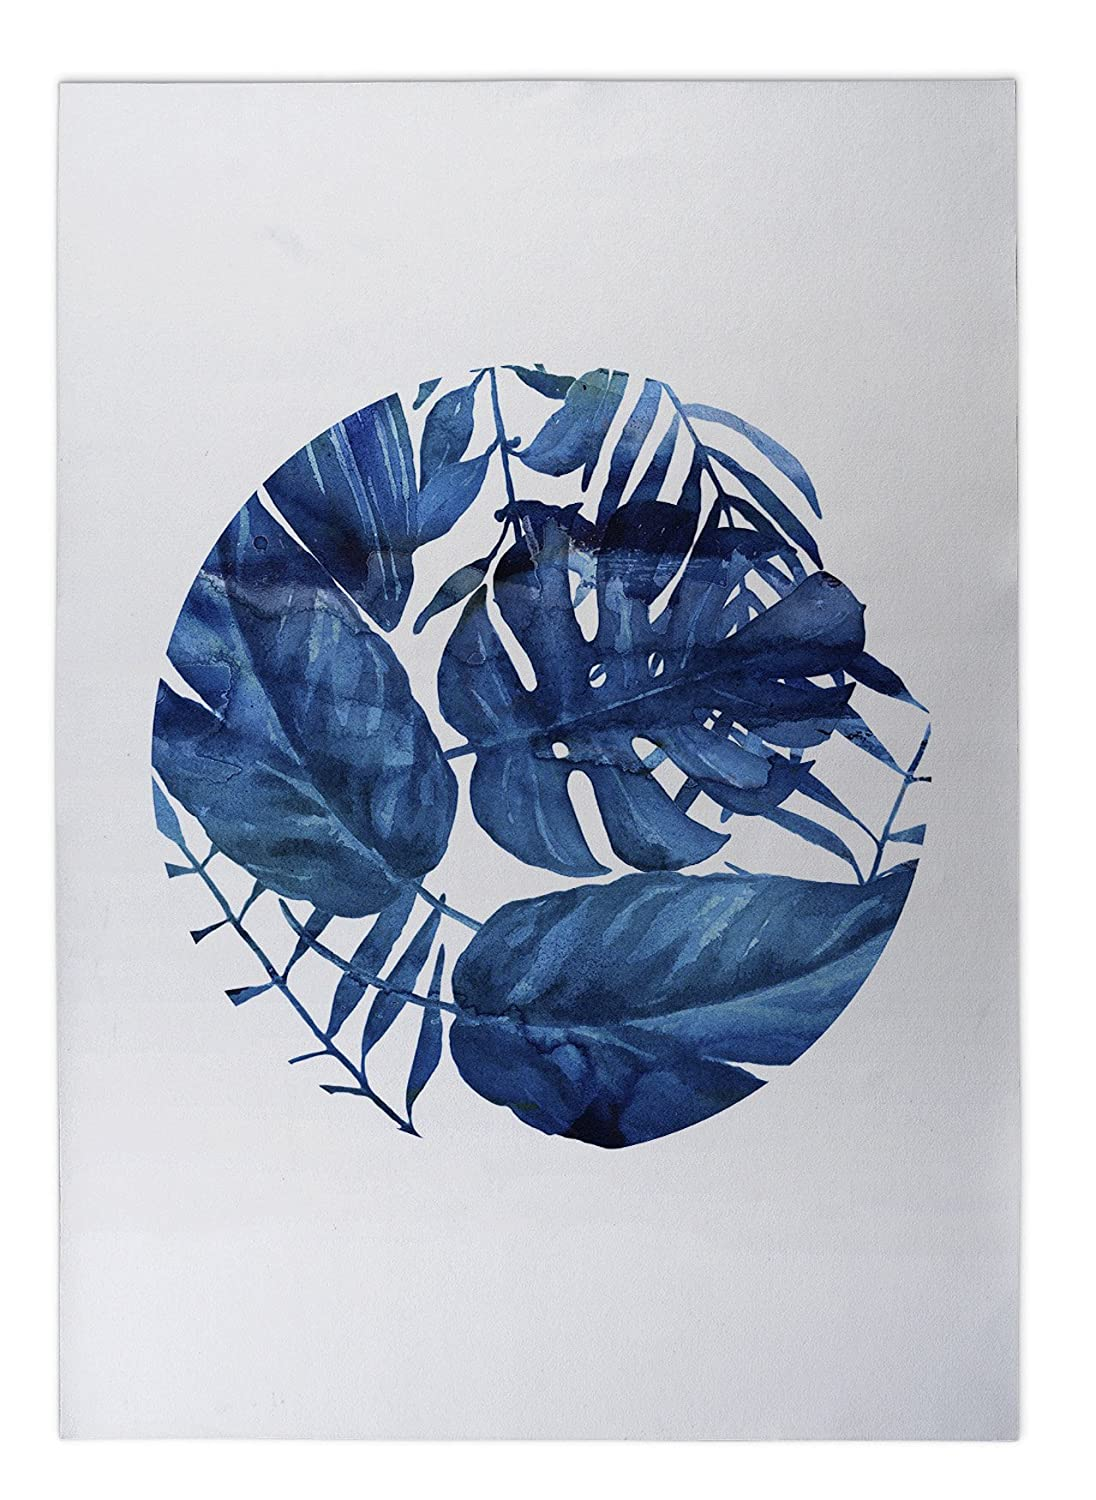 TELAVC009FM23 Blue//White - CABANA Collection KAVKA Designs Blue Leaf Indoor-Outdoor Floor Mat, Size: 24x36x0.2 -